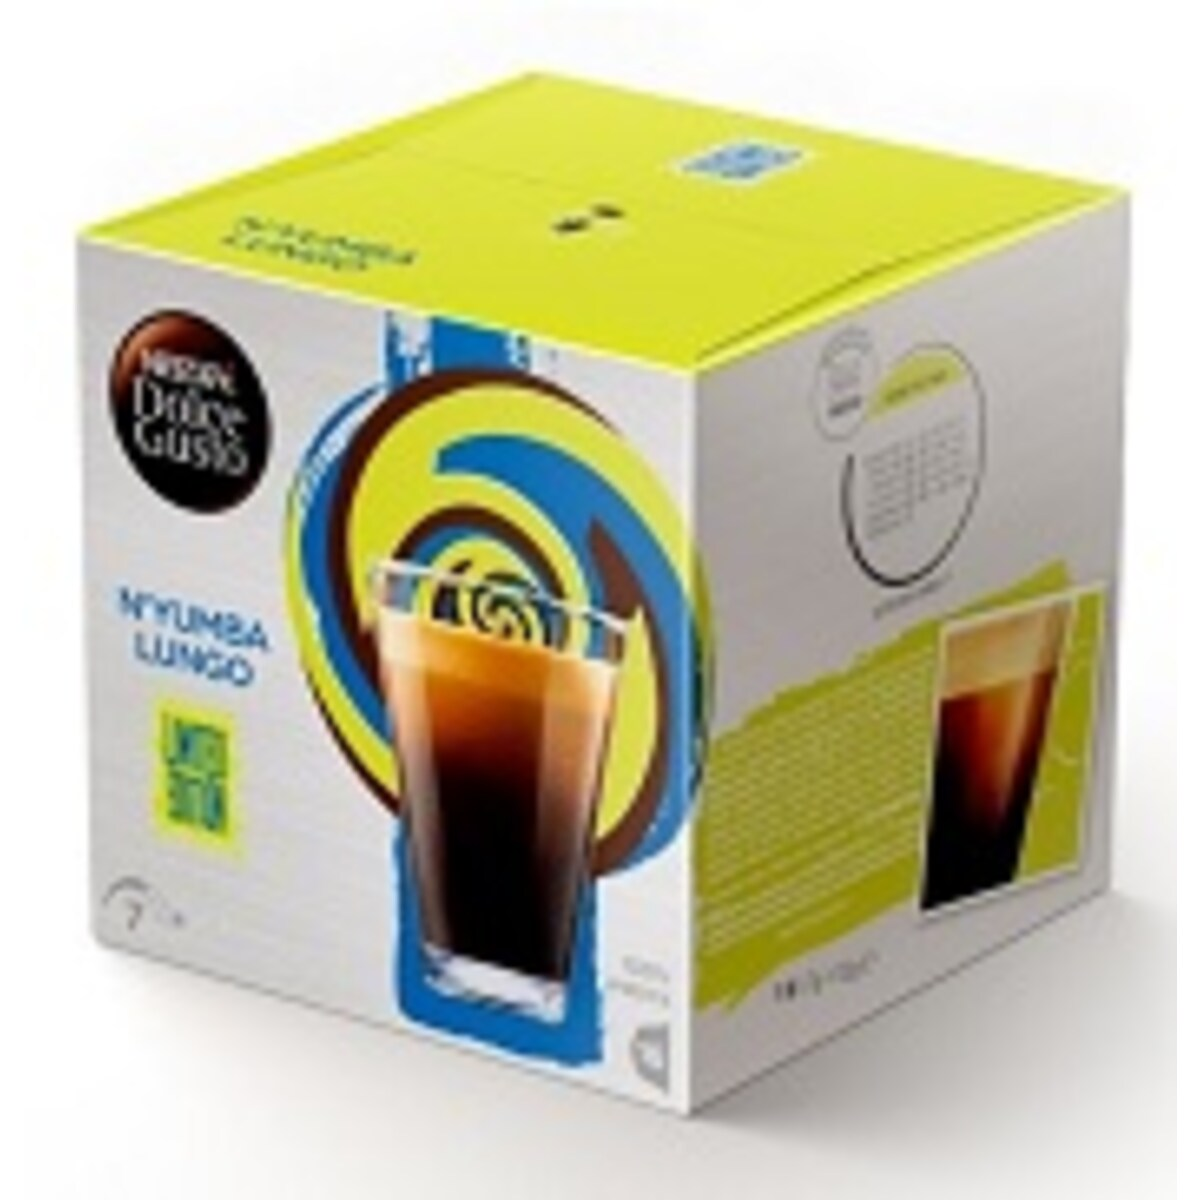 Nescafe Dolce Gusto N'Yumba Lungo